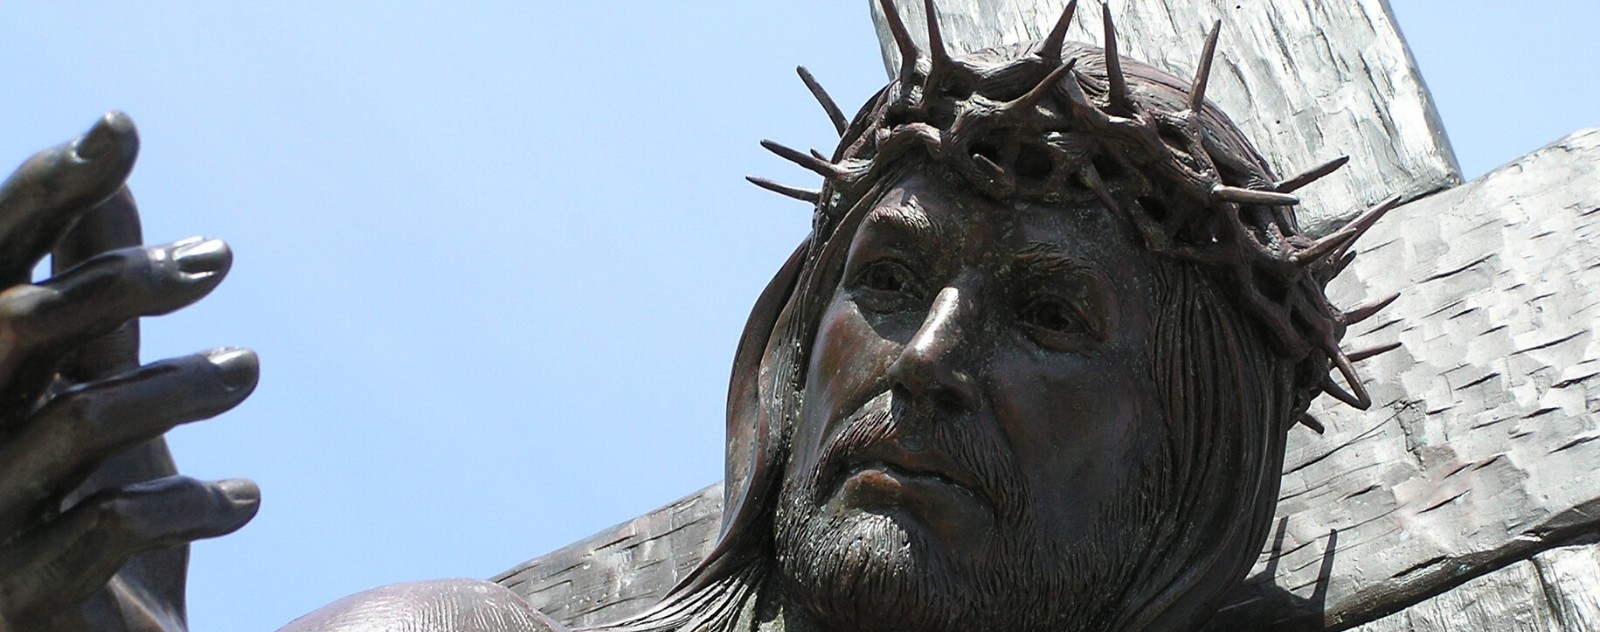 why jesus worn crown of thorns